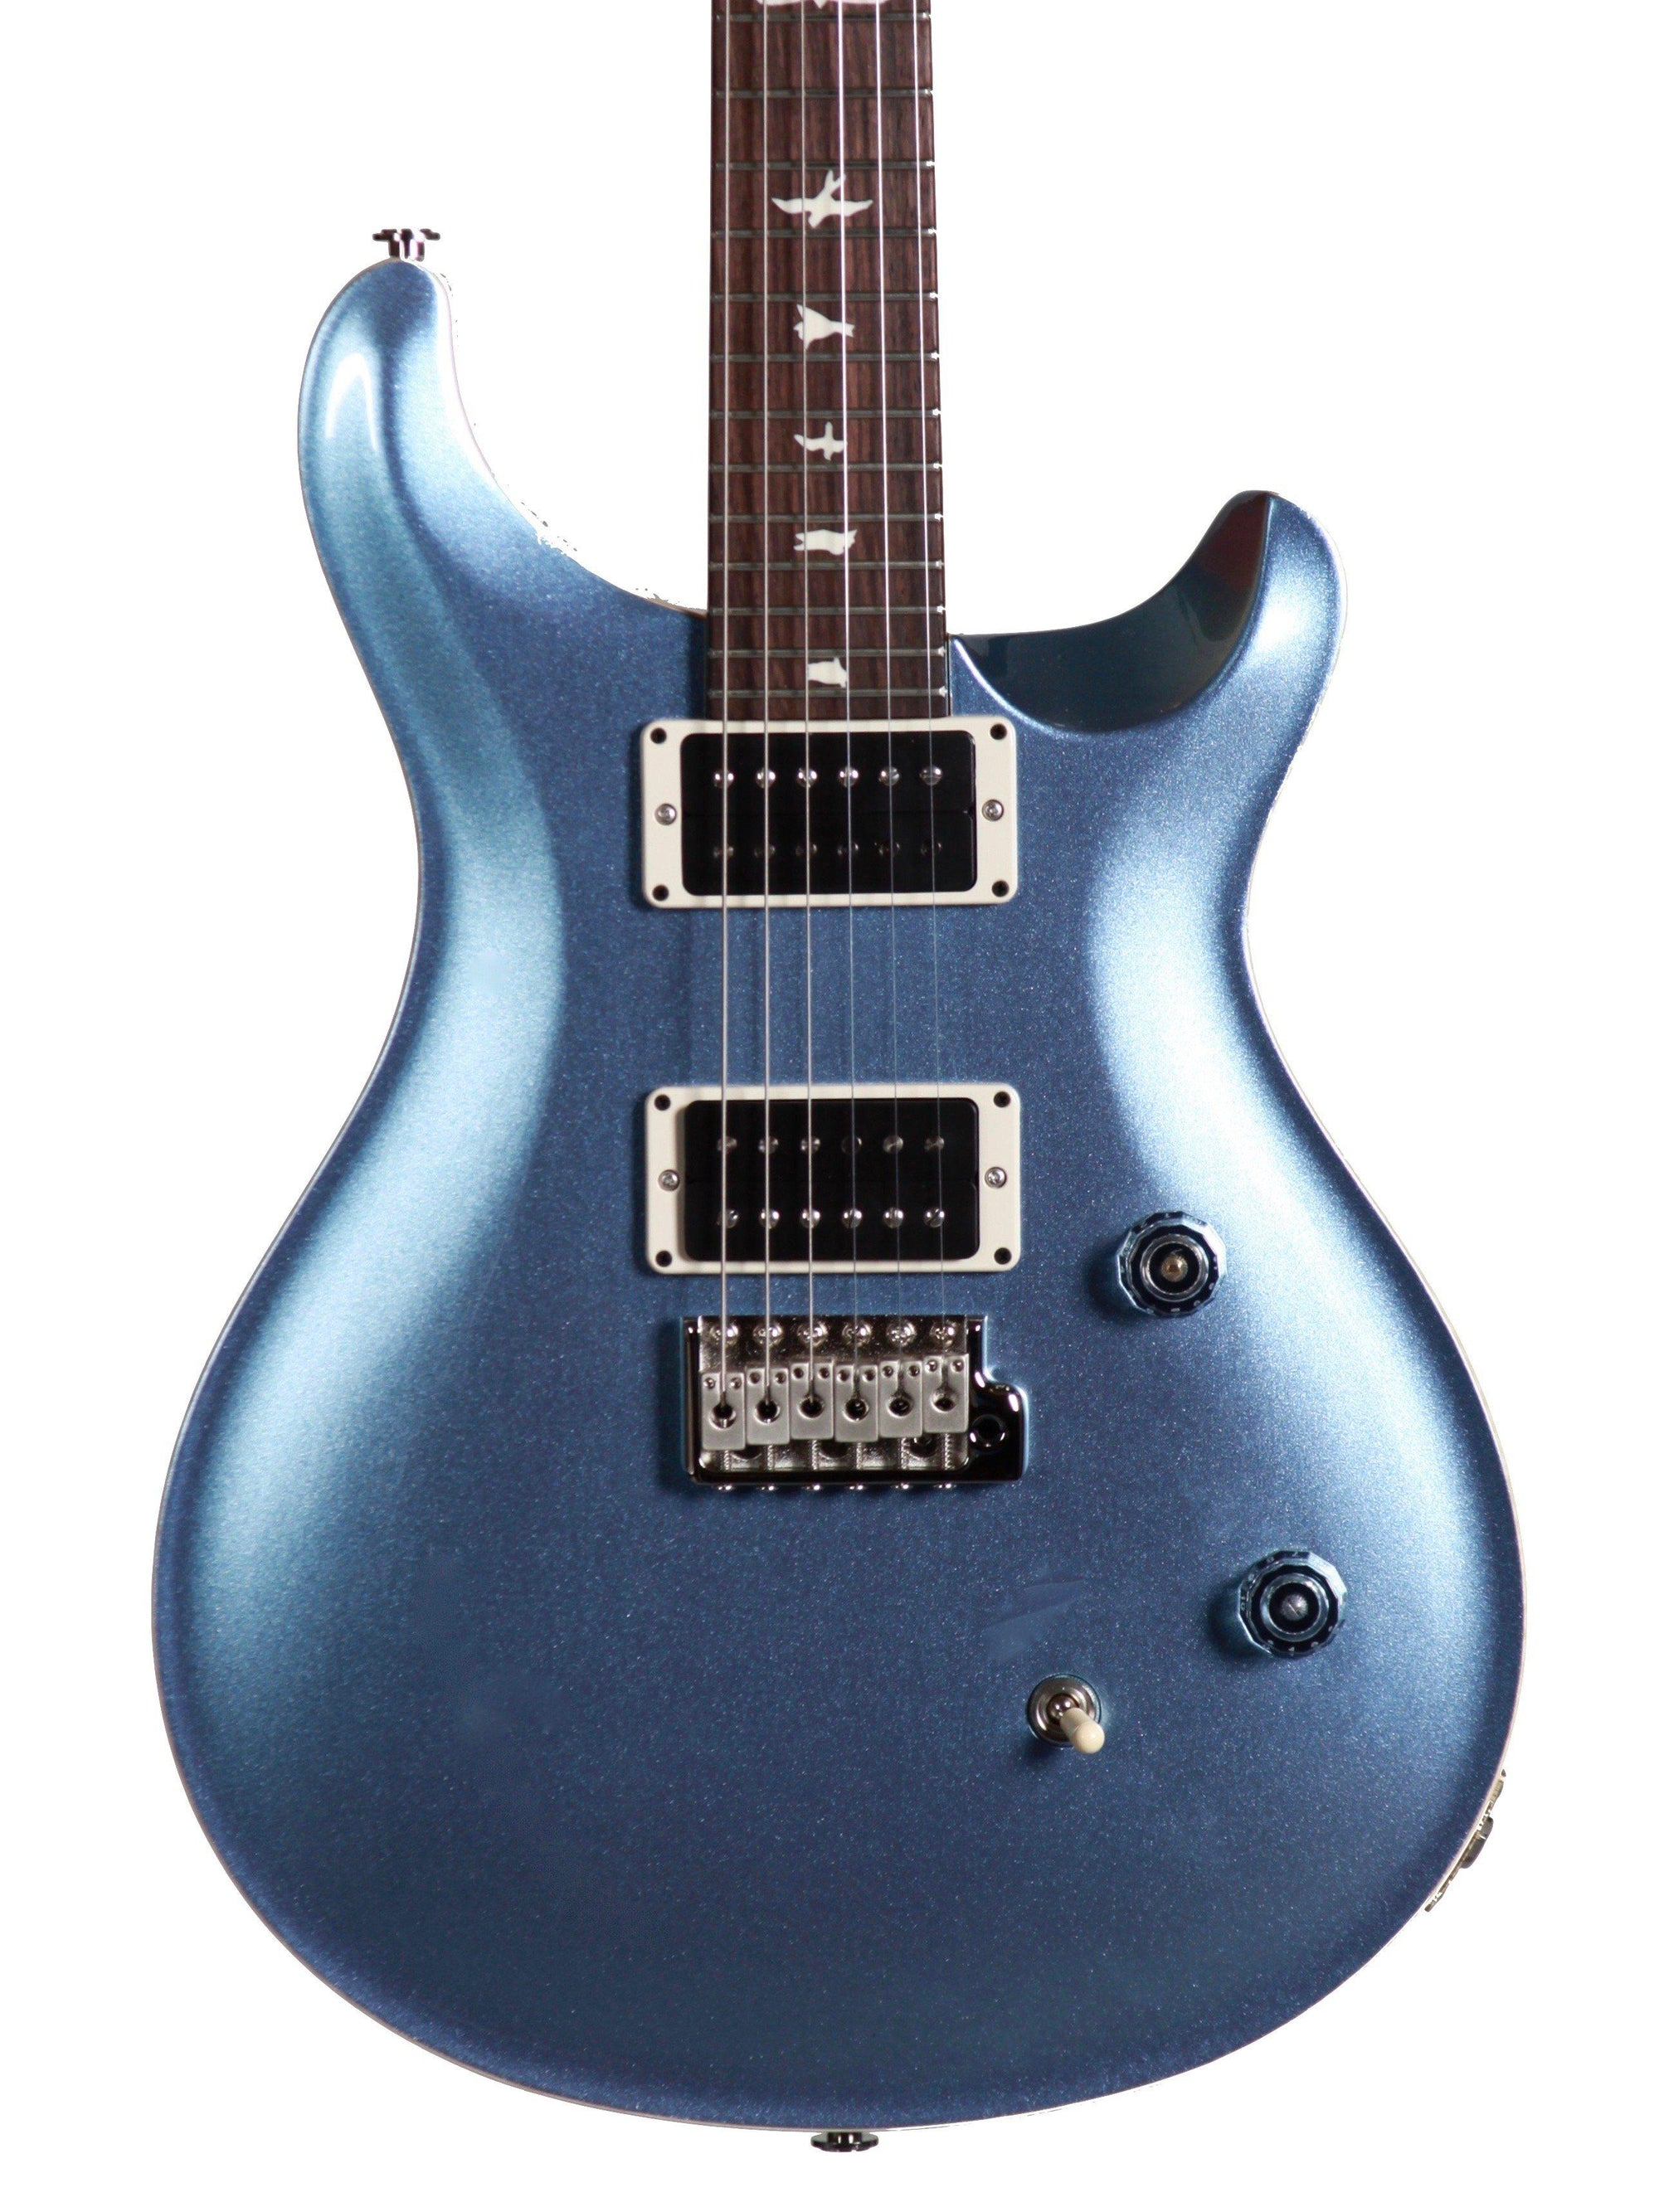 Paul Reed Smith CE 24 Frosted Blue Metallic - Paul Reed Smith Guitars - Heartbreaker Guitars